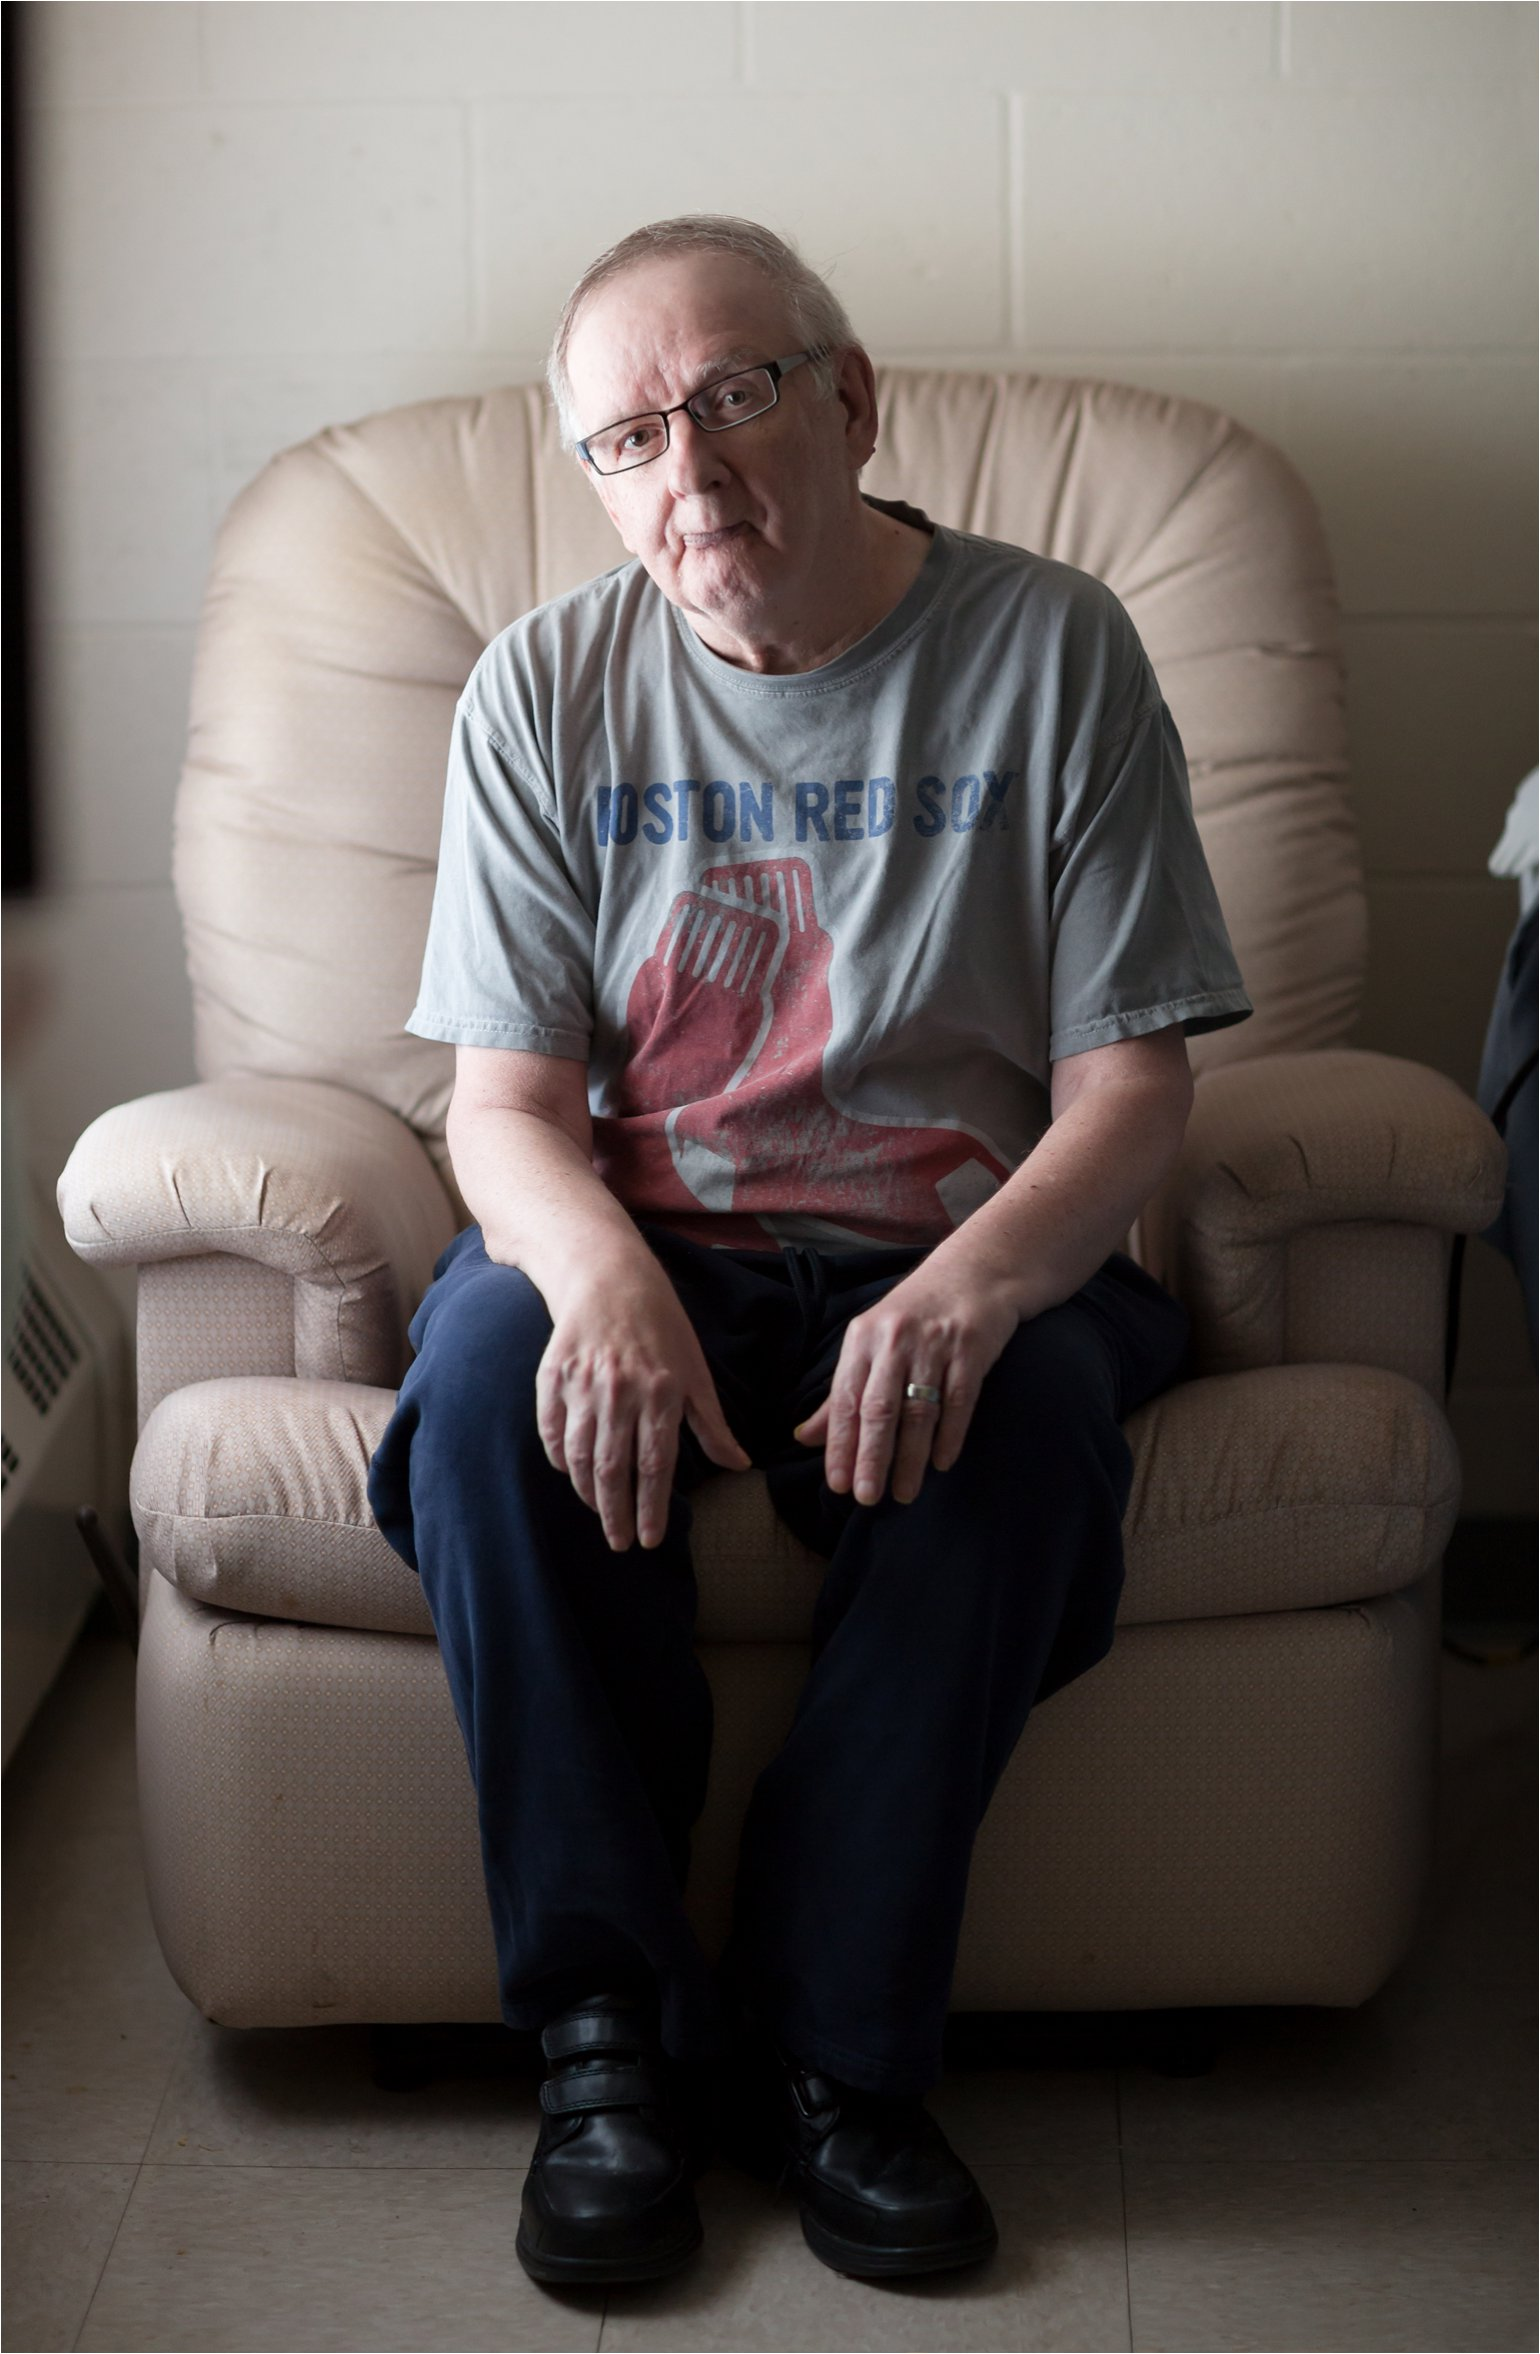 Elderly Man in Chair (C) Maundy Mitchell